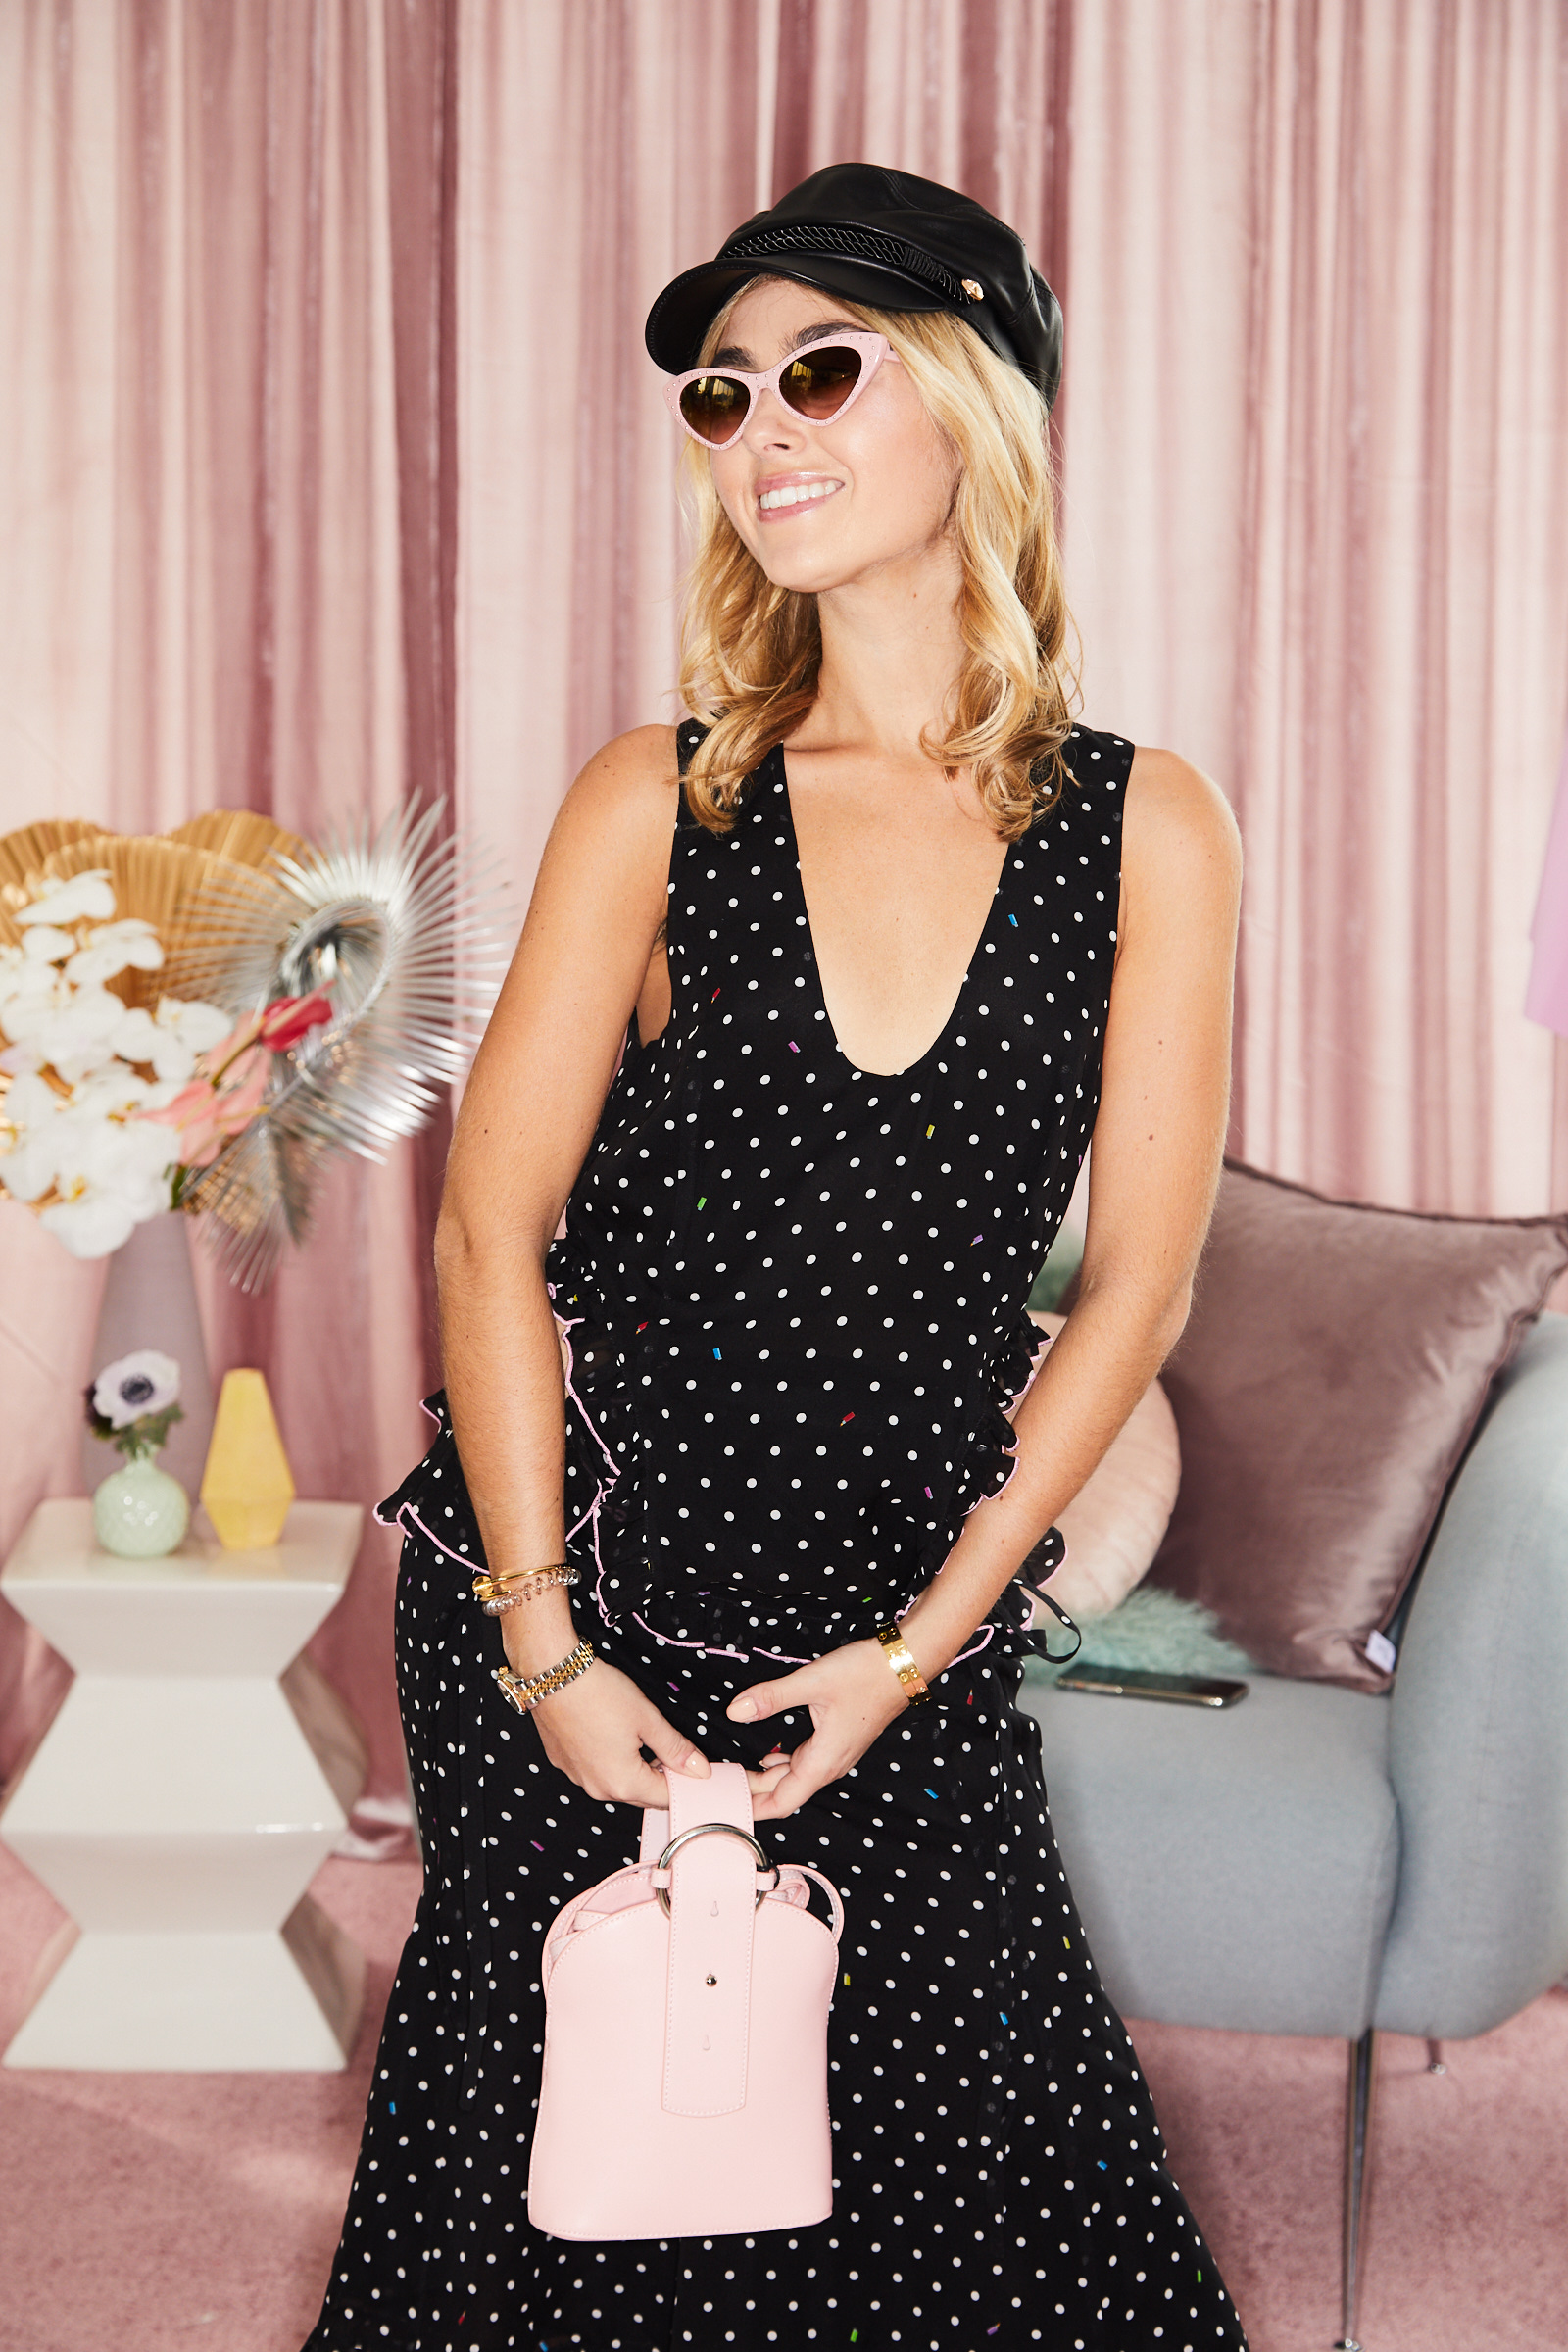 CHARLOTTE BICKLEY YIN 2MY YANG SHOPBOP STYLEHIGH EVENT NYC SISTER FASHION BLOGGERS